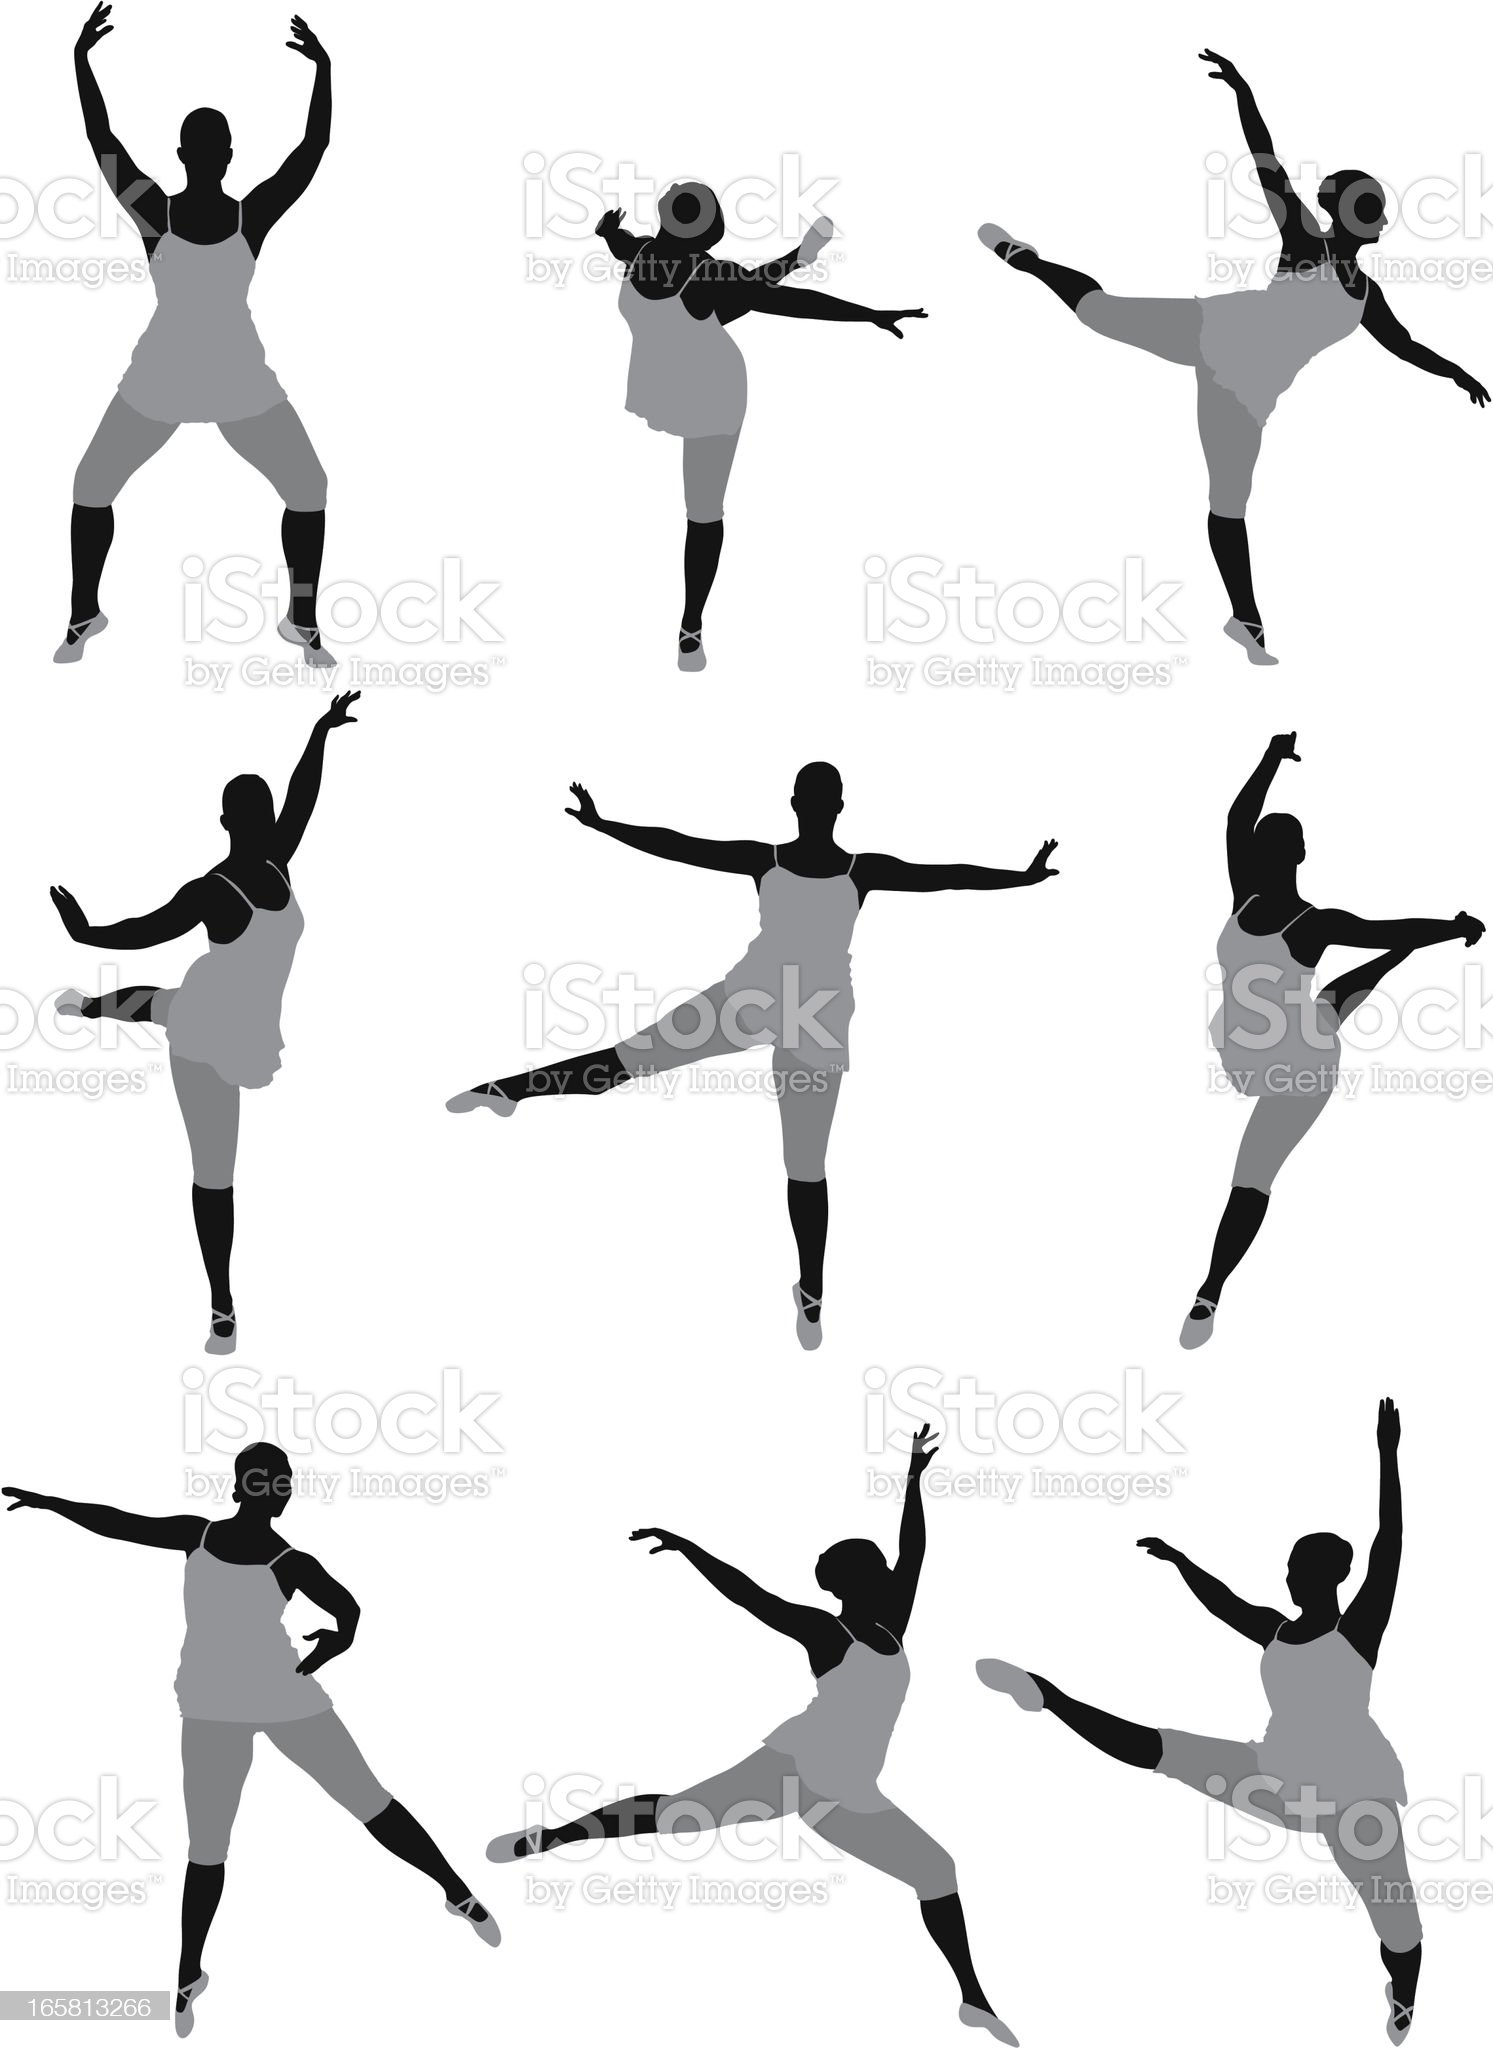 Silhouette of a woman dancing royalty-free stock vector art